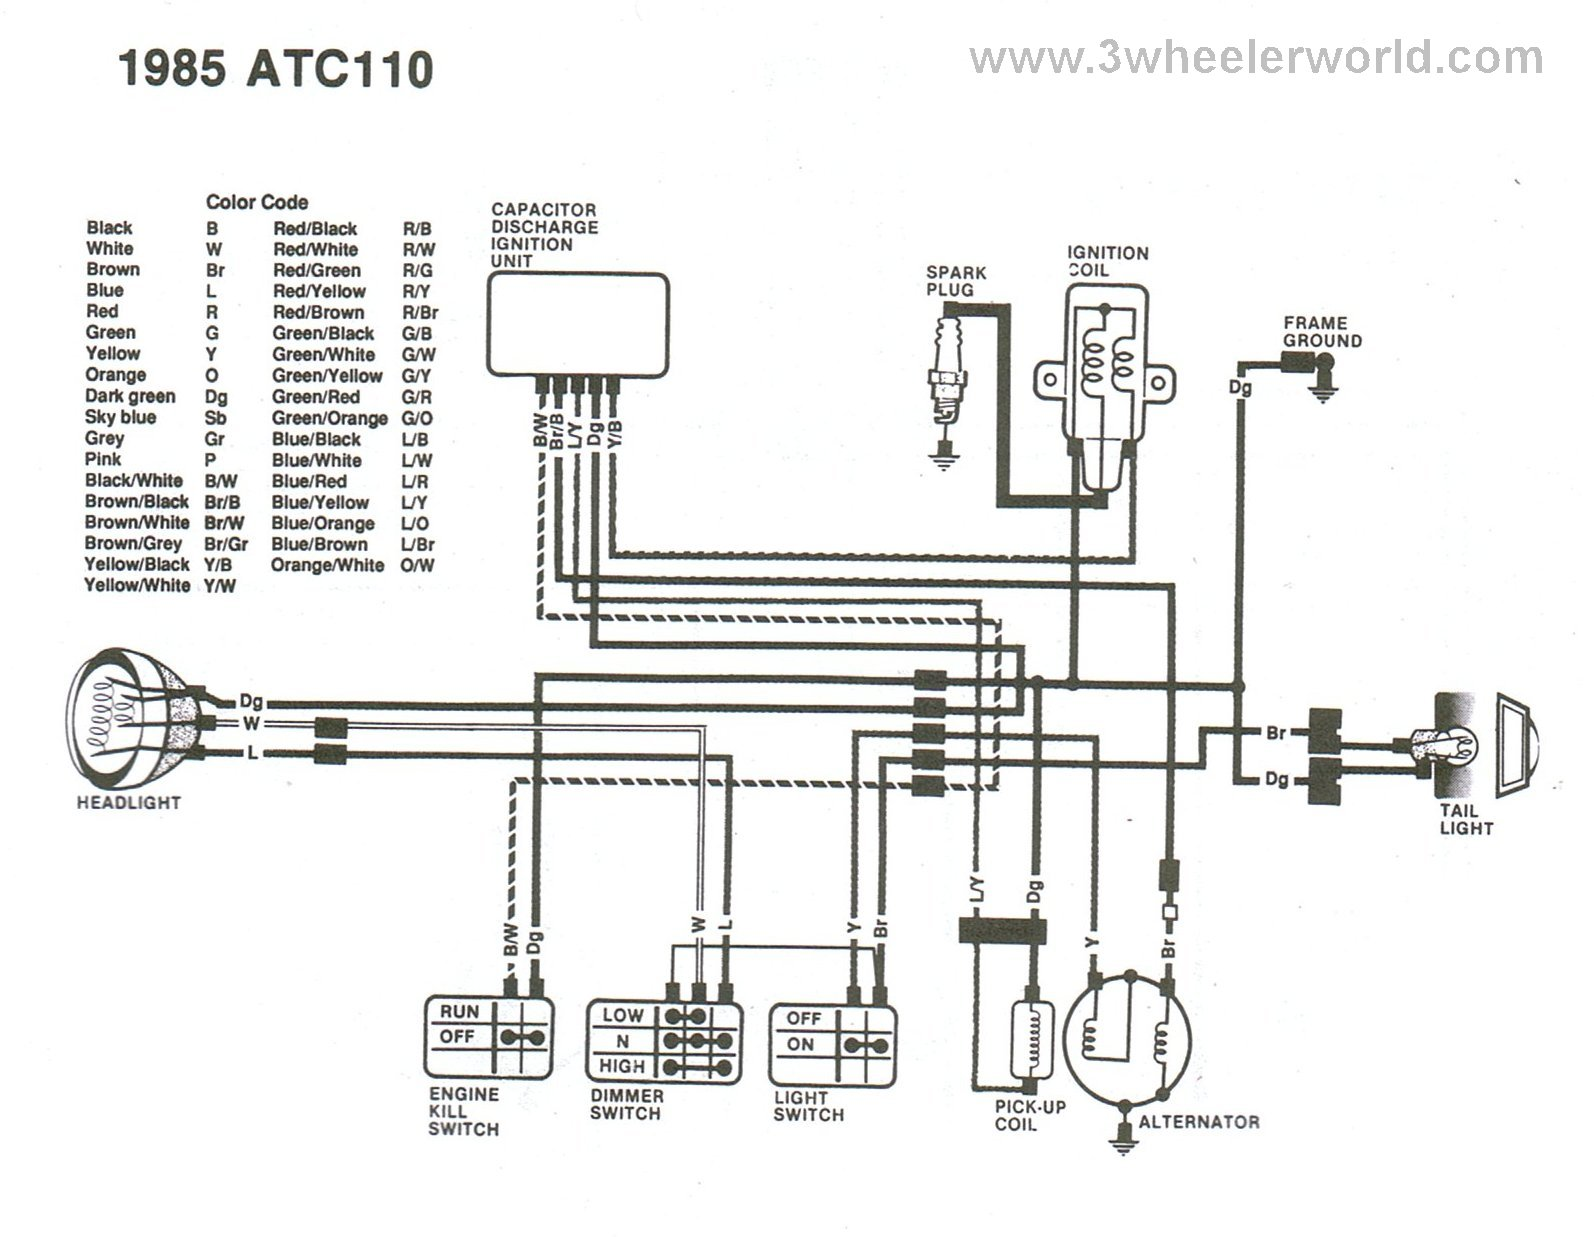 ATC110x85 four wheeler wiring diagram loncin 4 wheeler wiring diagram \u2022 free Chinese 90Cc ATV at eliteediting.co